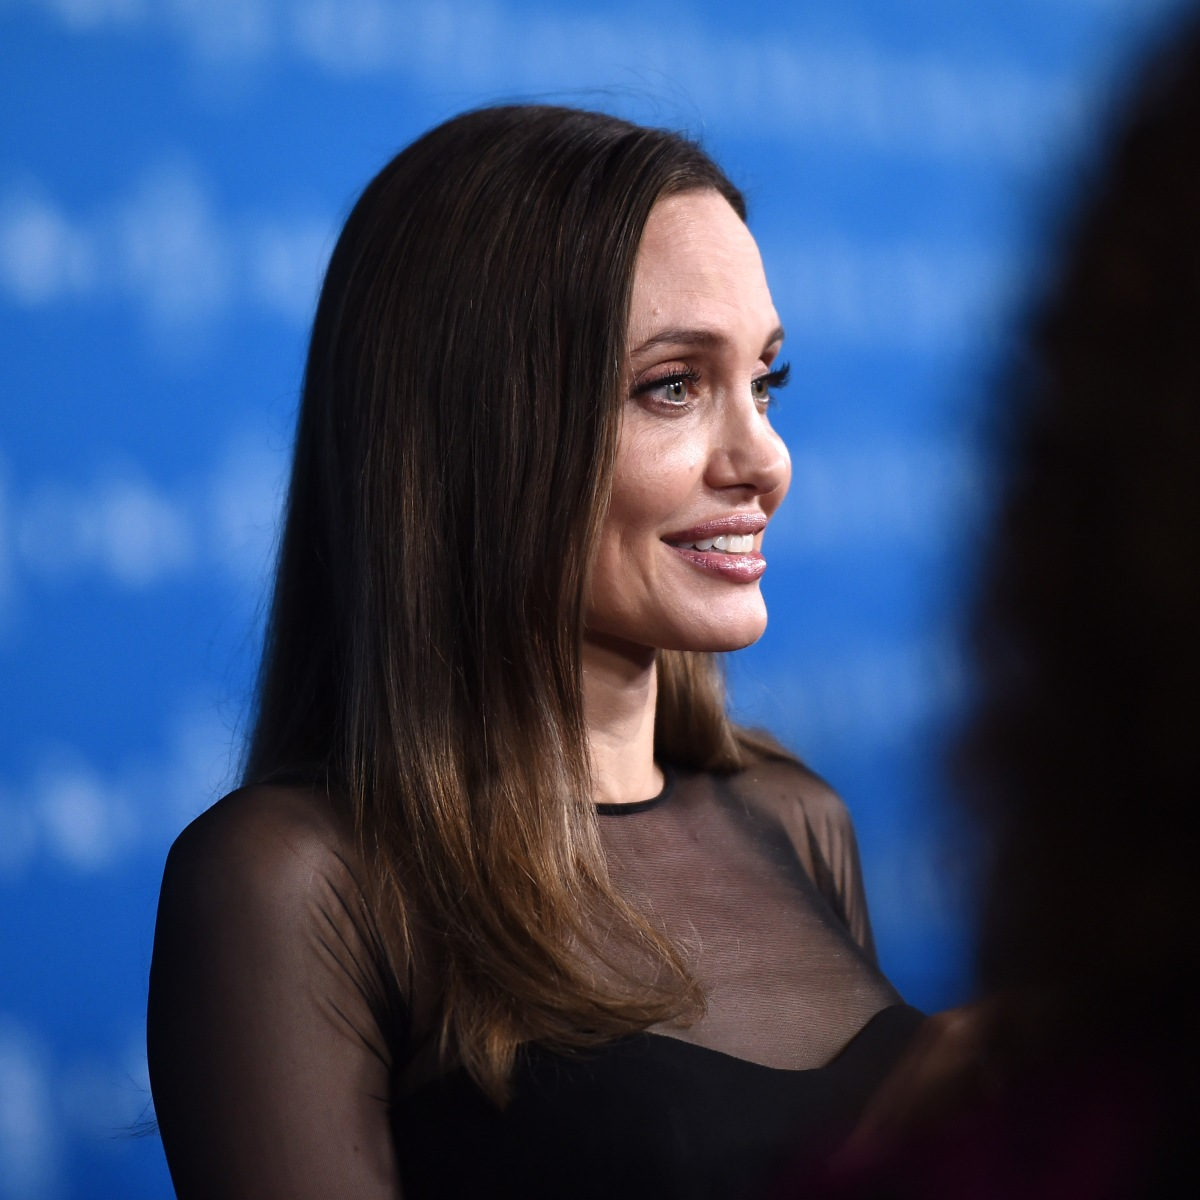 Angelina Jolie Hot And Sexy Pics angelina jolie stuns on disney's d23 red carpet: see photos!